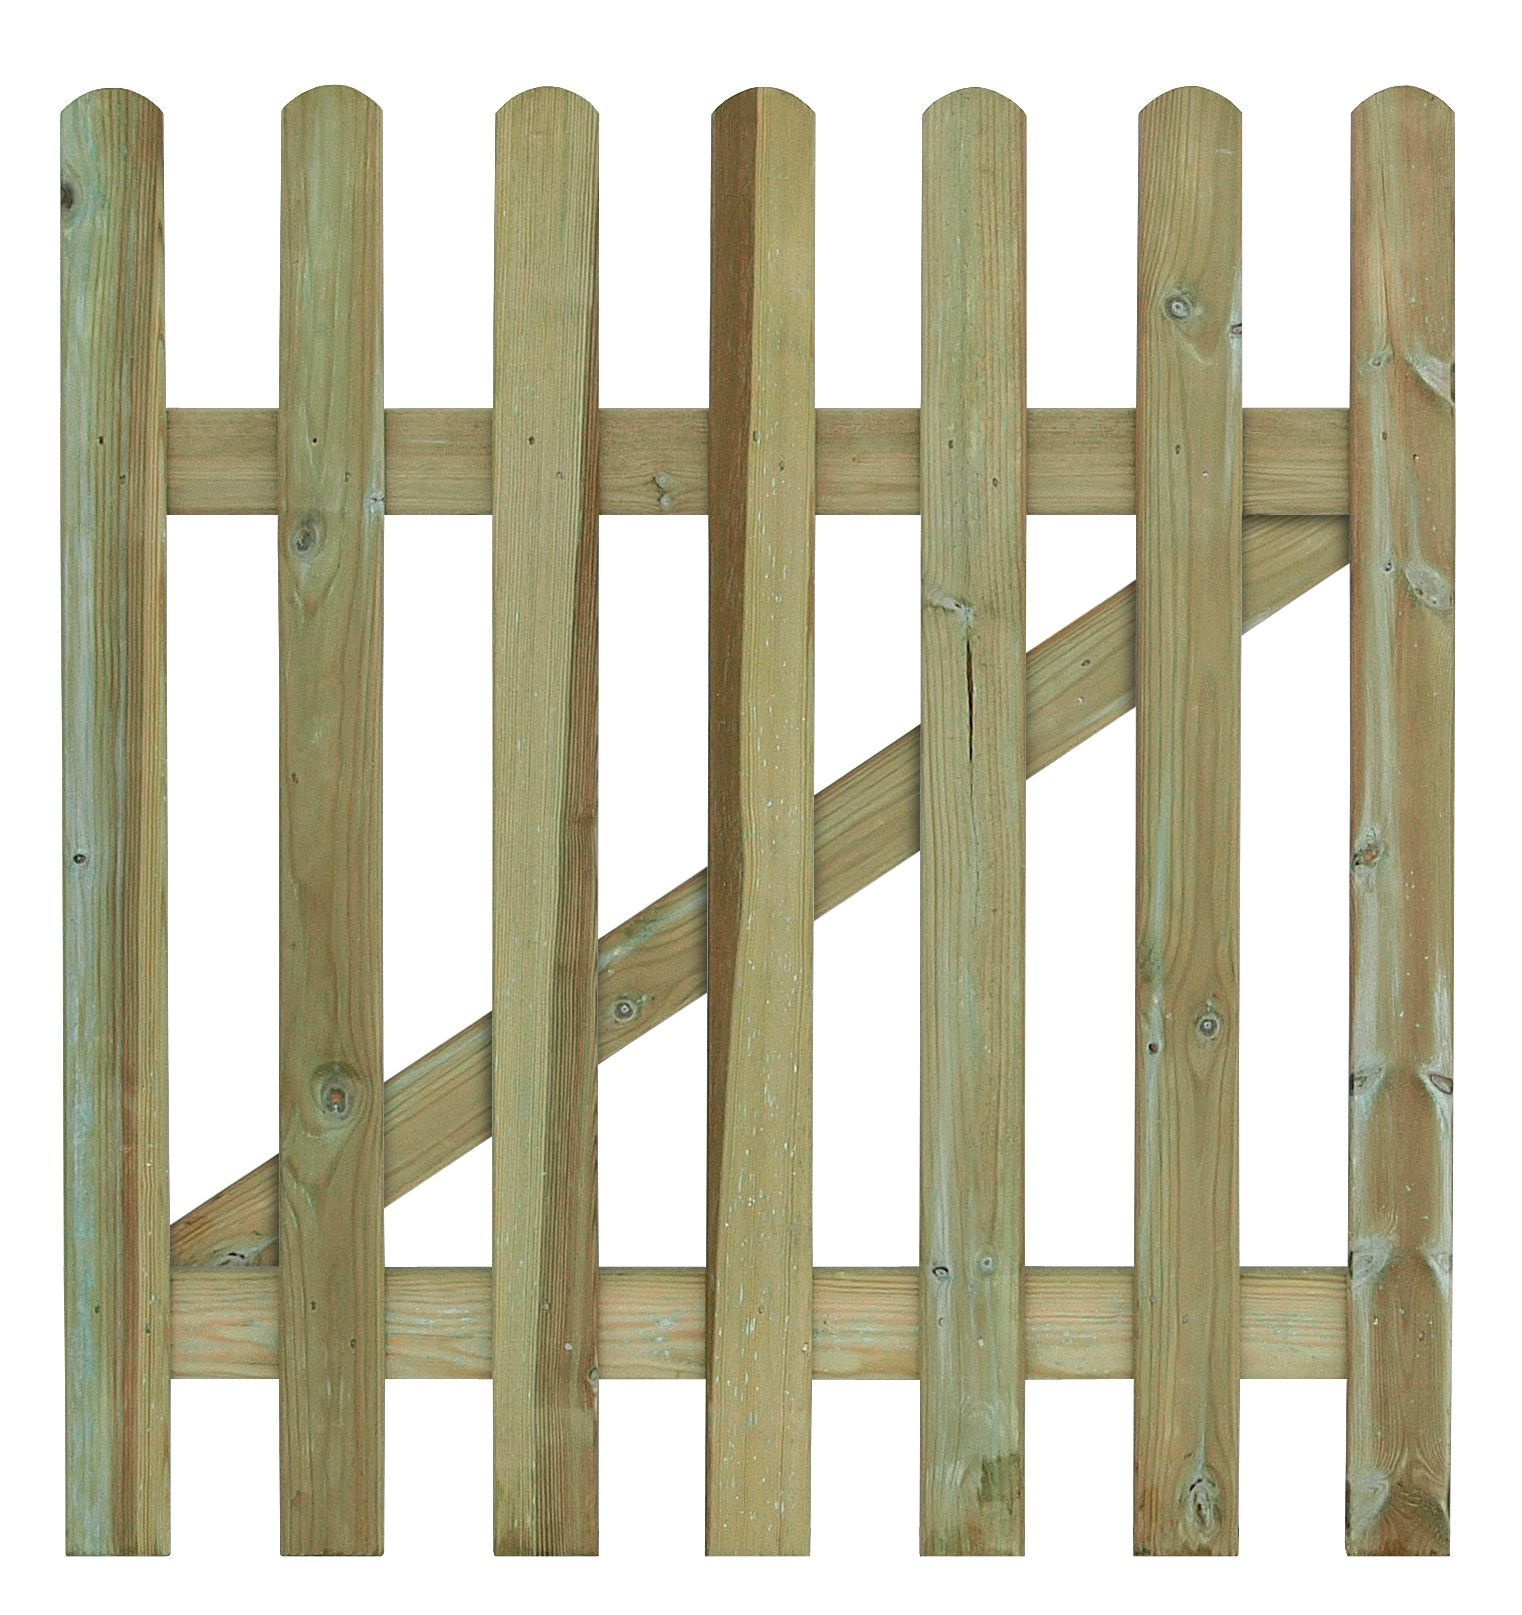 Grange Wood Palisade Round Top Gate H 900mm W 900mm